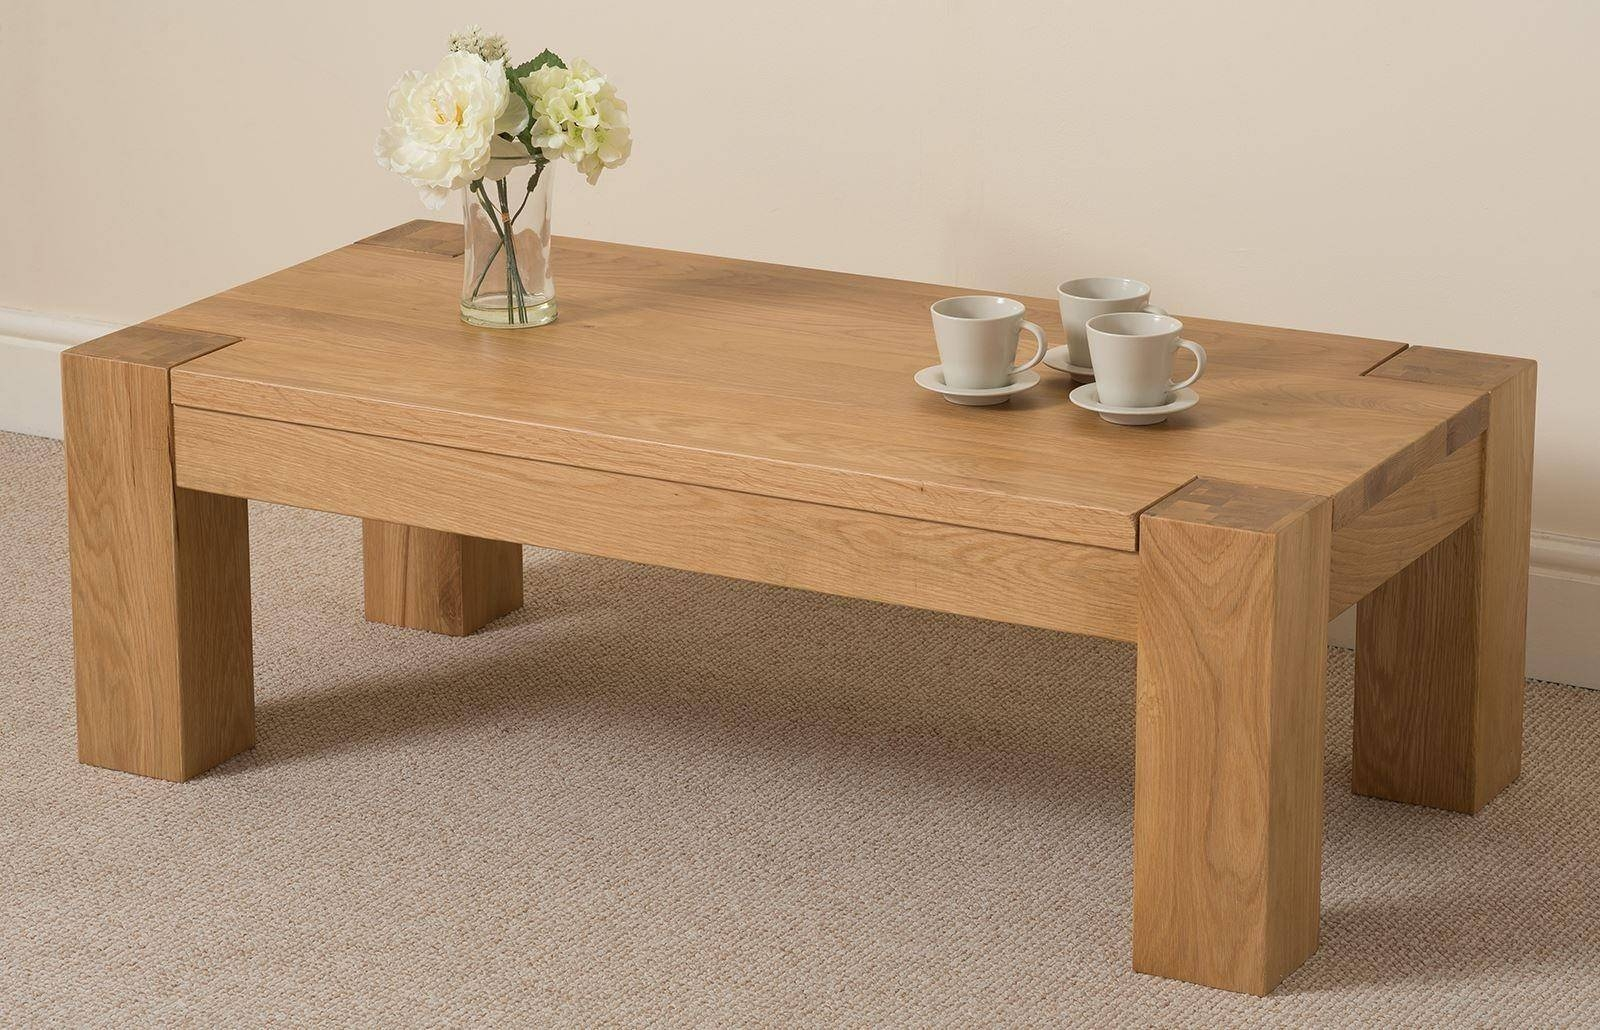 Kuba Oak Large Coffee Table Free Uk Delivery Inside Chunky Wood Tables Image